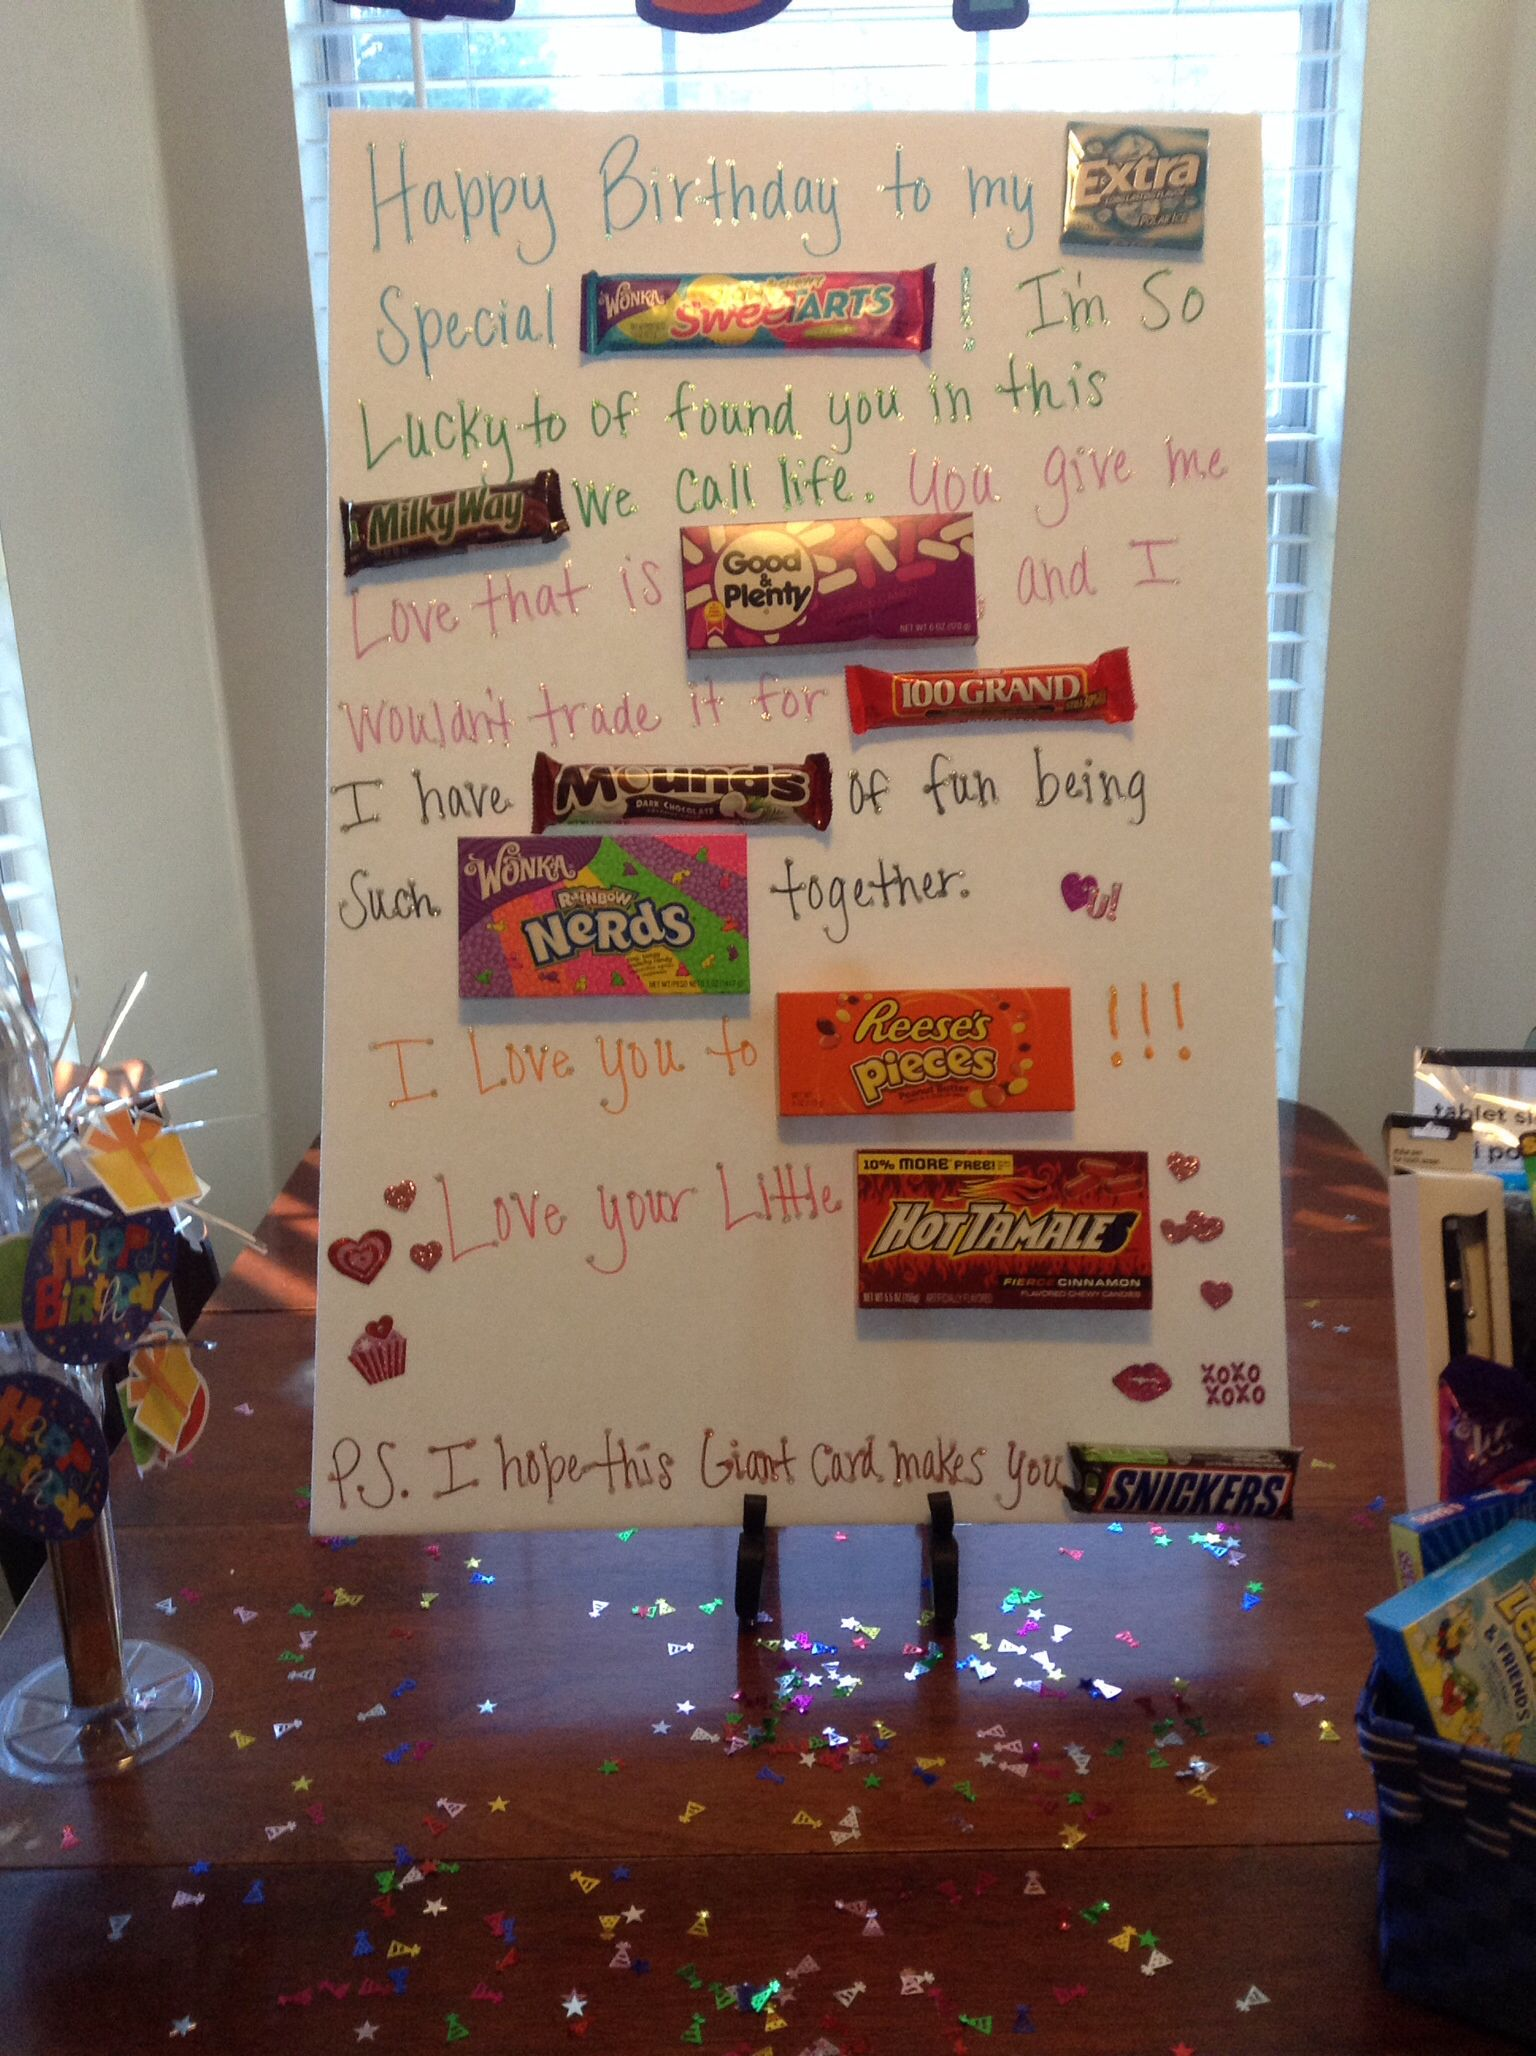 boyfriend birthday surprise ideas birthday party ideas birthday ...